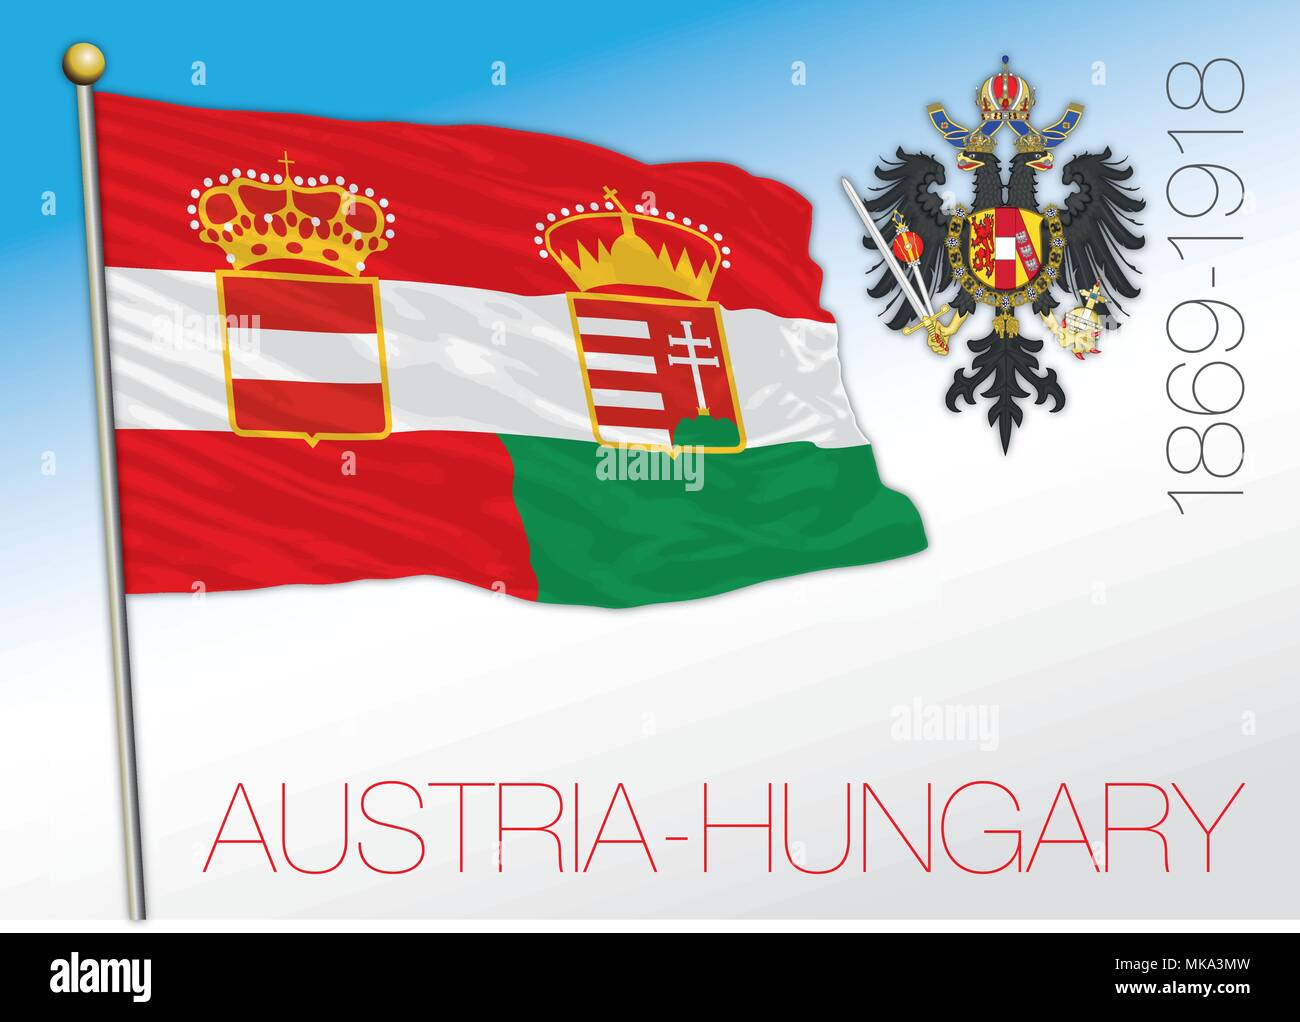 Austria and Hungary empire historical flag, 1869 - 1918 - Stock Image